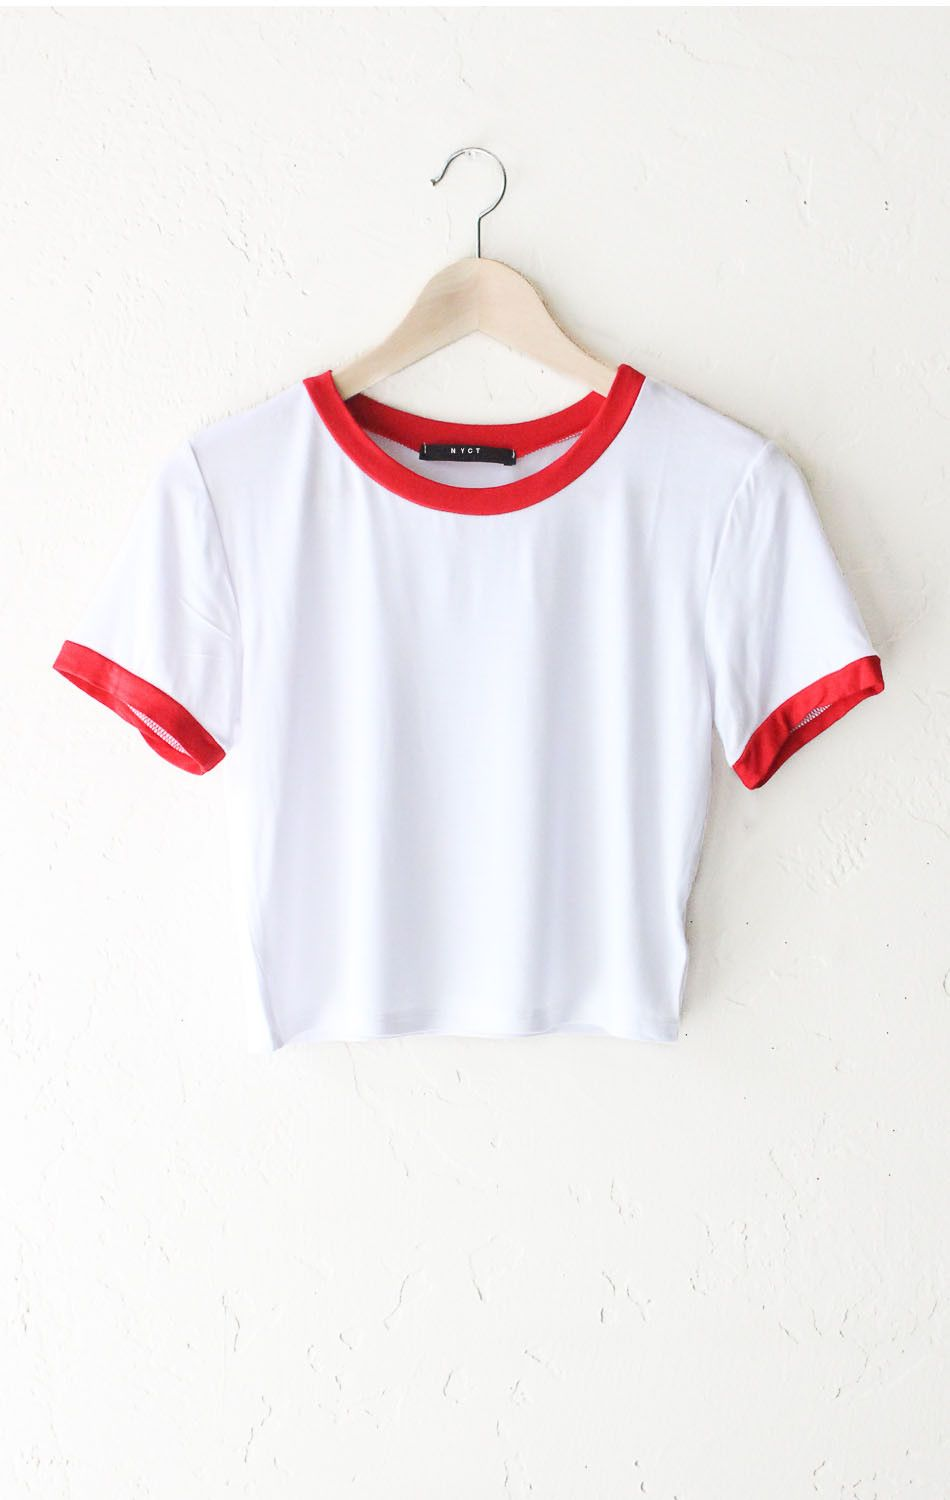 Cropped Ringer Tee White Red Clothes 3 Pinterest Tendencies Tshirt Beach Kid Hitam S Boho Fashion Outfits Styles